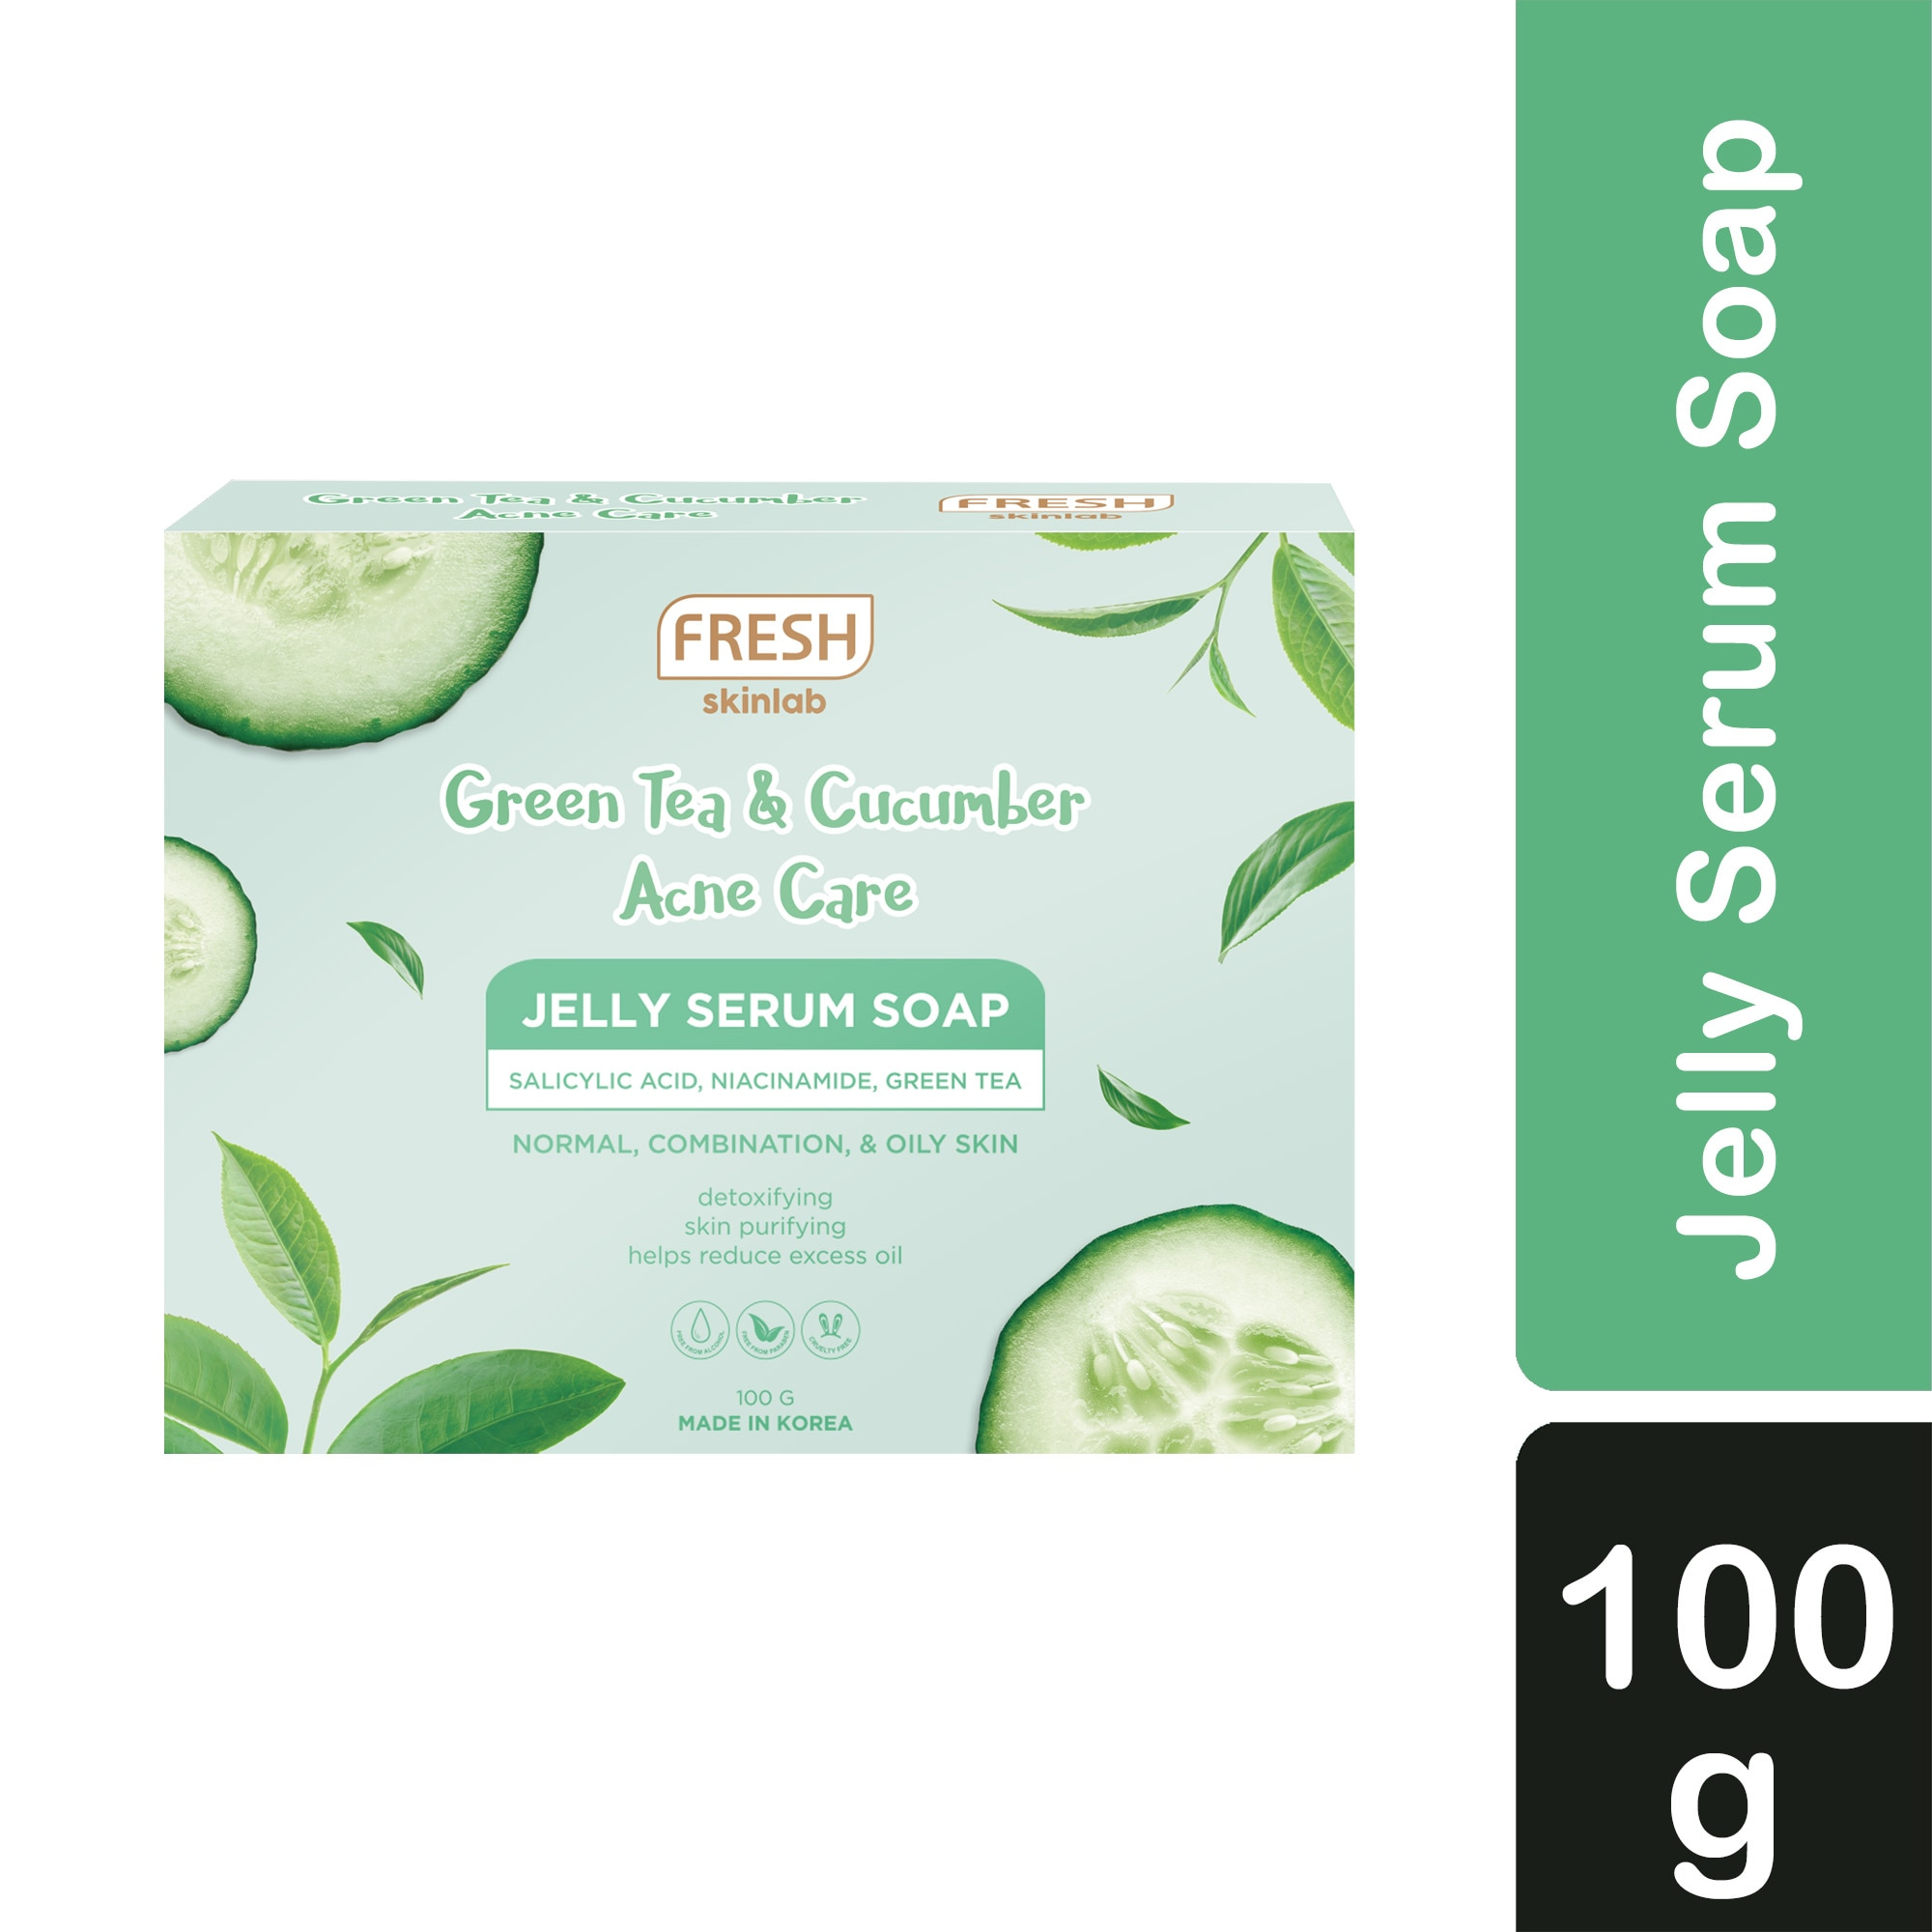 Skinlab Green Tea and Cucumber Acne Care Jelly Serum Soap 100g